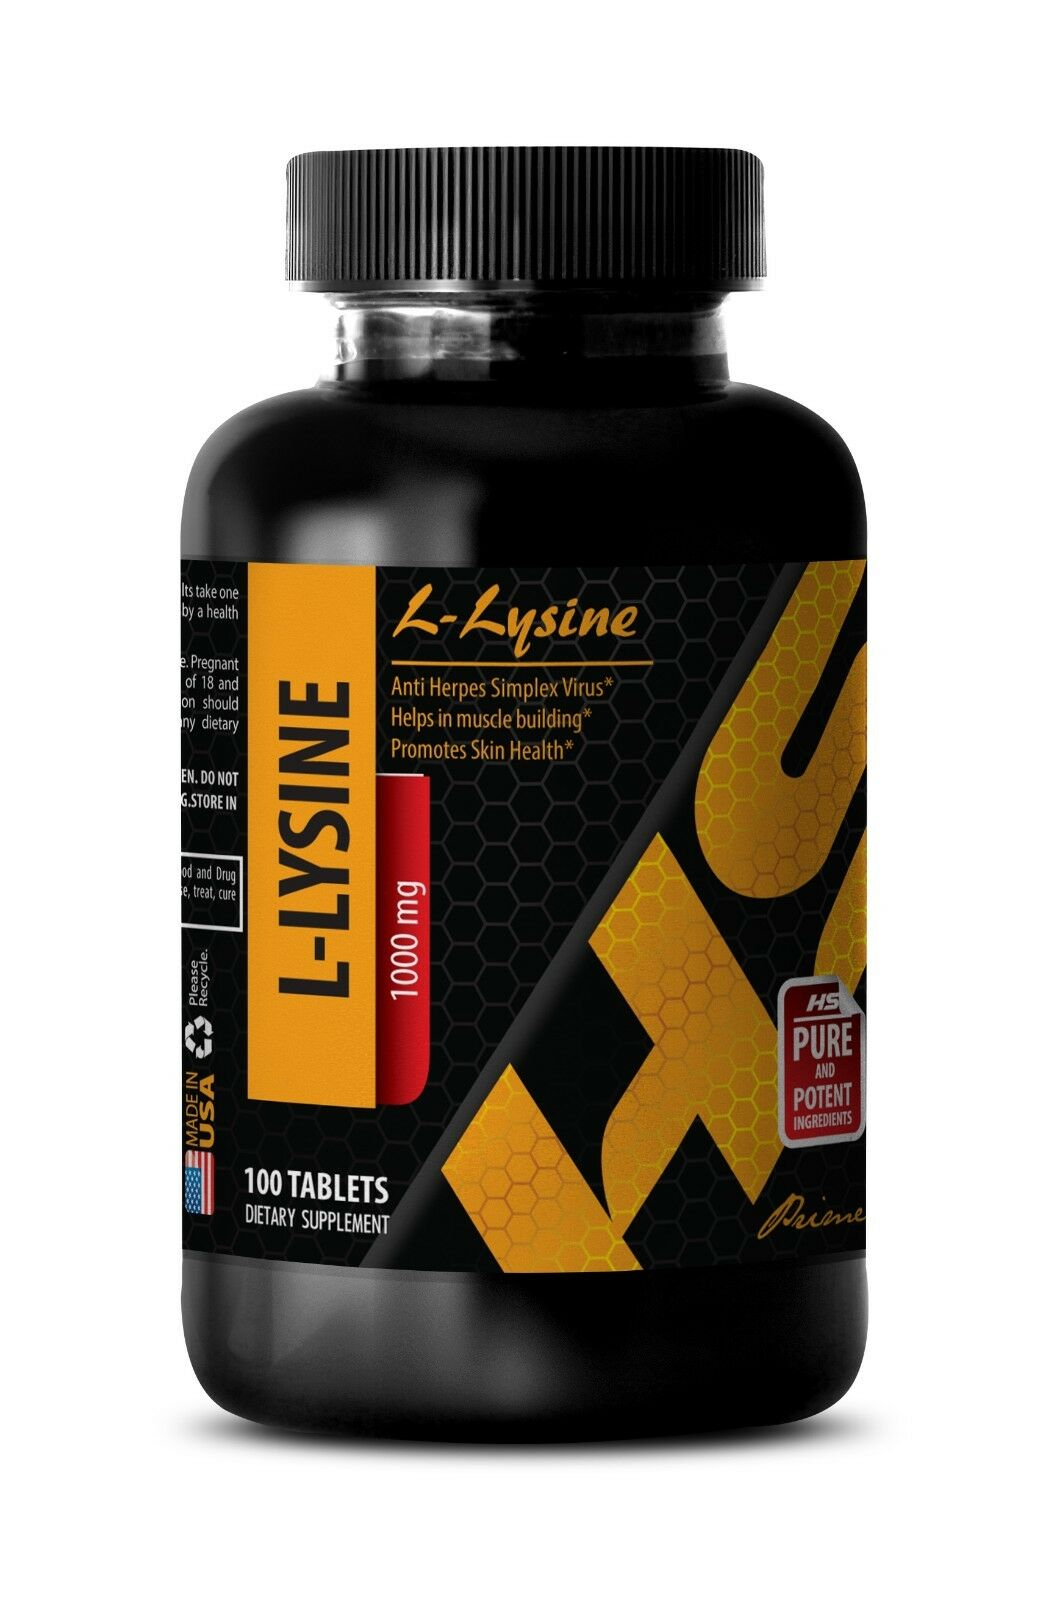 amino acid capsules - L-LYSINE 1000mg - herpes cure - 1 Bottle